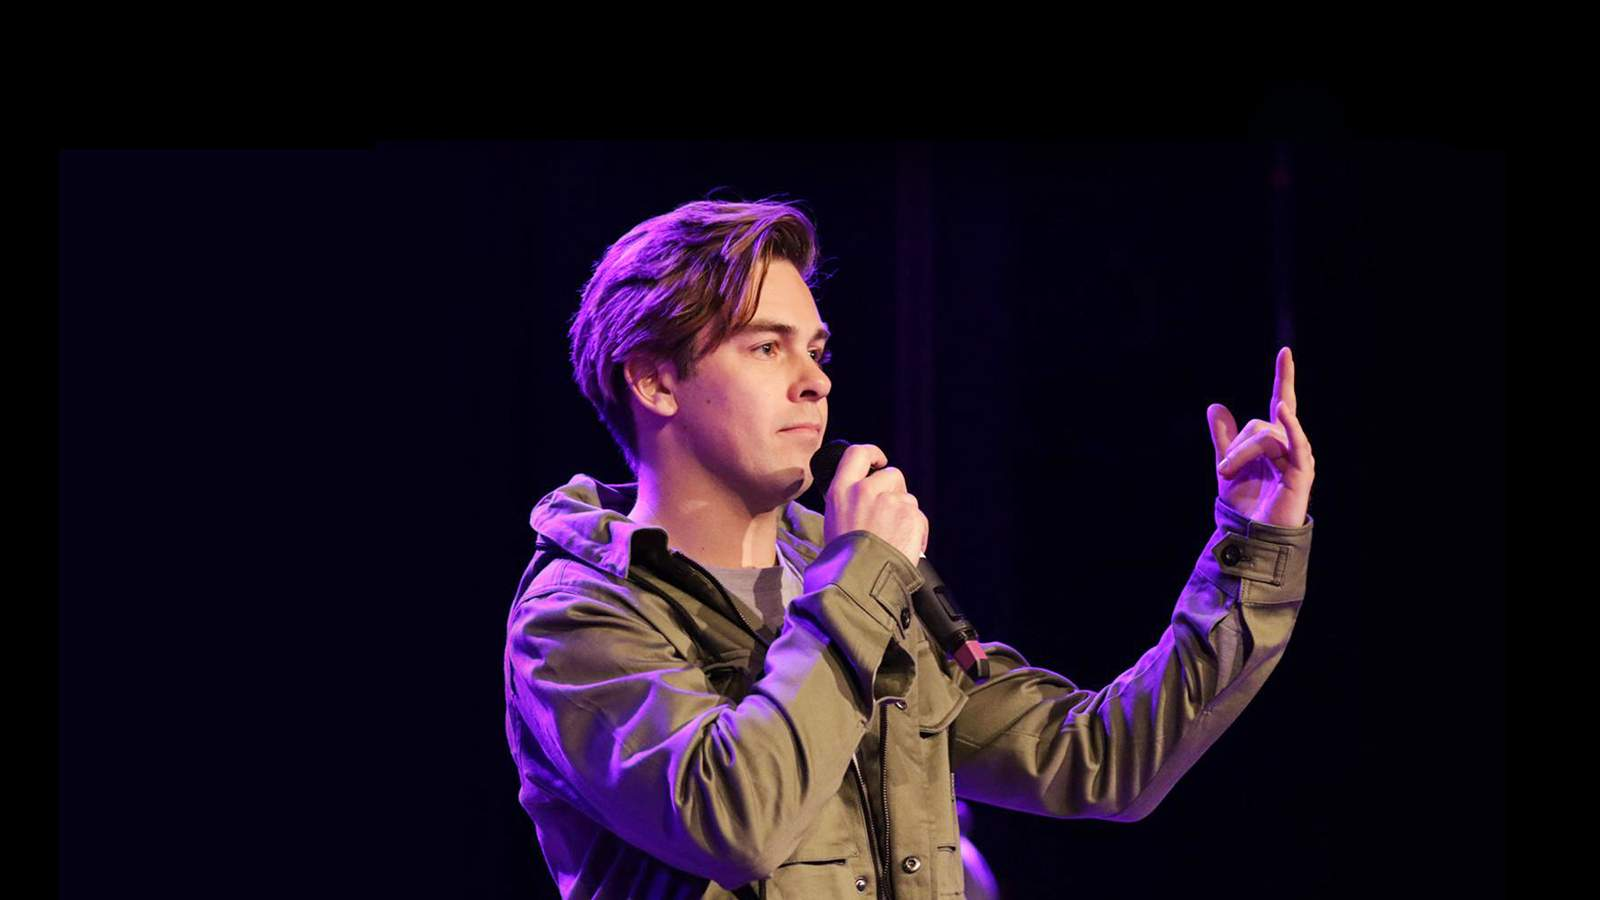 Tiny Meat Gang - Cody Ko (Rescheduled from 4/5/2020, 10/14/2020)